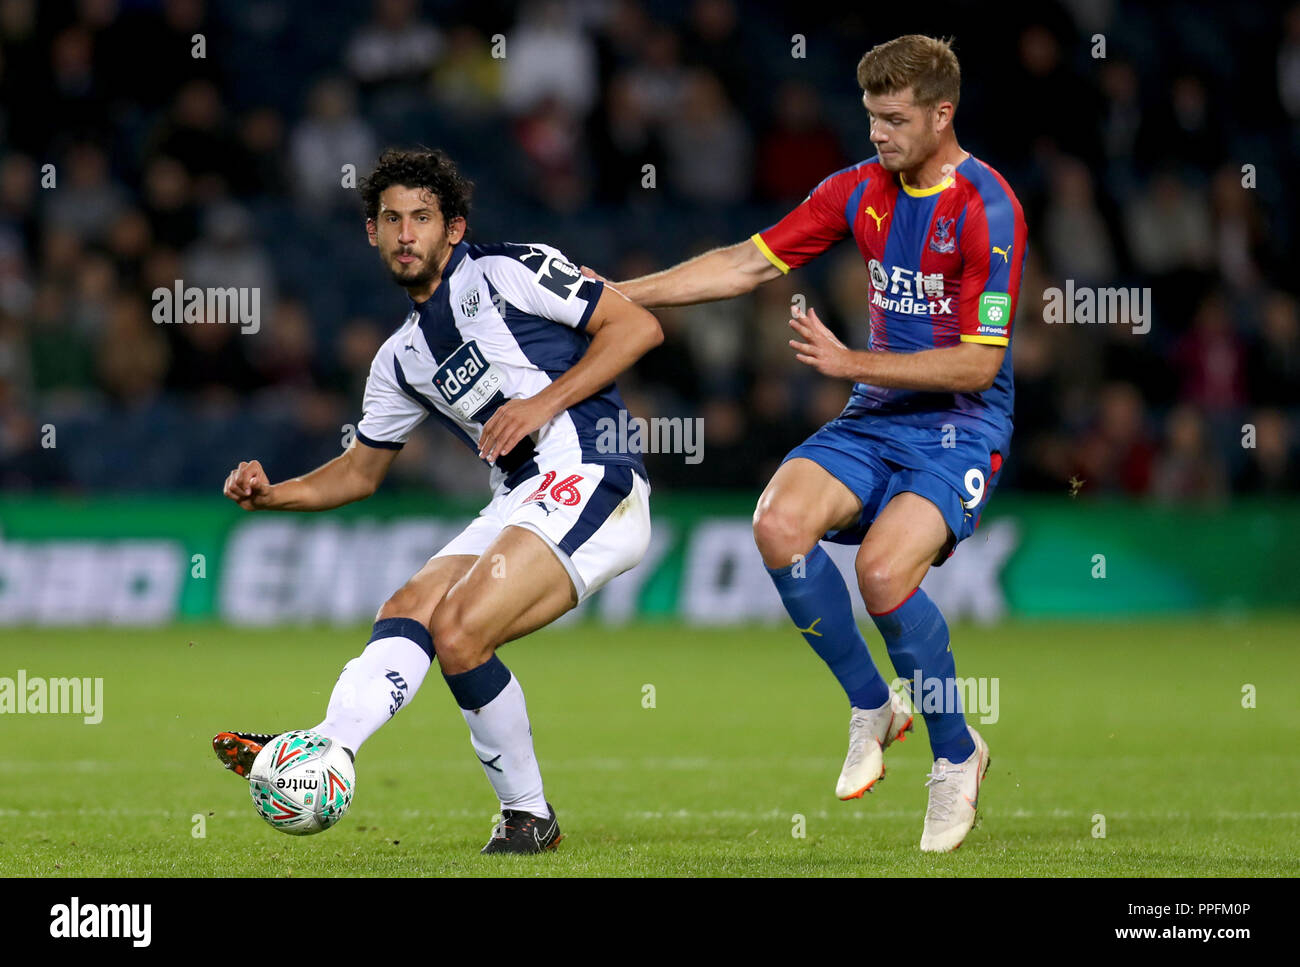 West Bromwich Albion's Dwight Gayle (left) and Crystal Palace's Alexander Sorloth battle for the ball during the third round Carabao Cup match at The Hawthorns, West Bromwich. - Stock Image